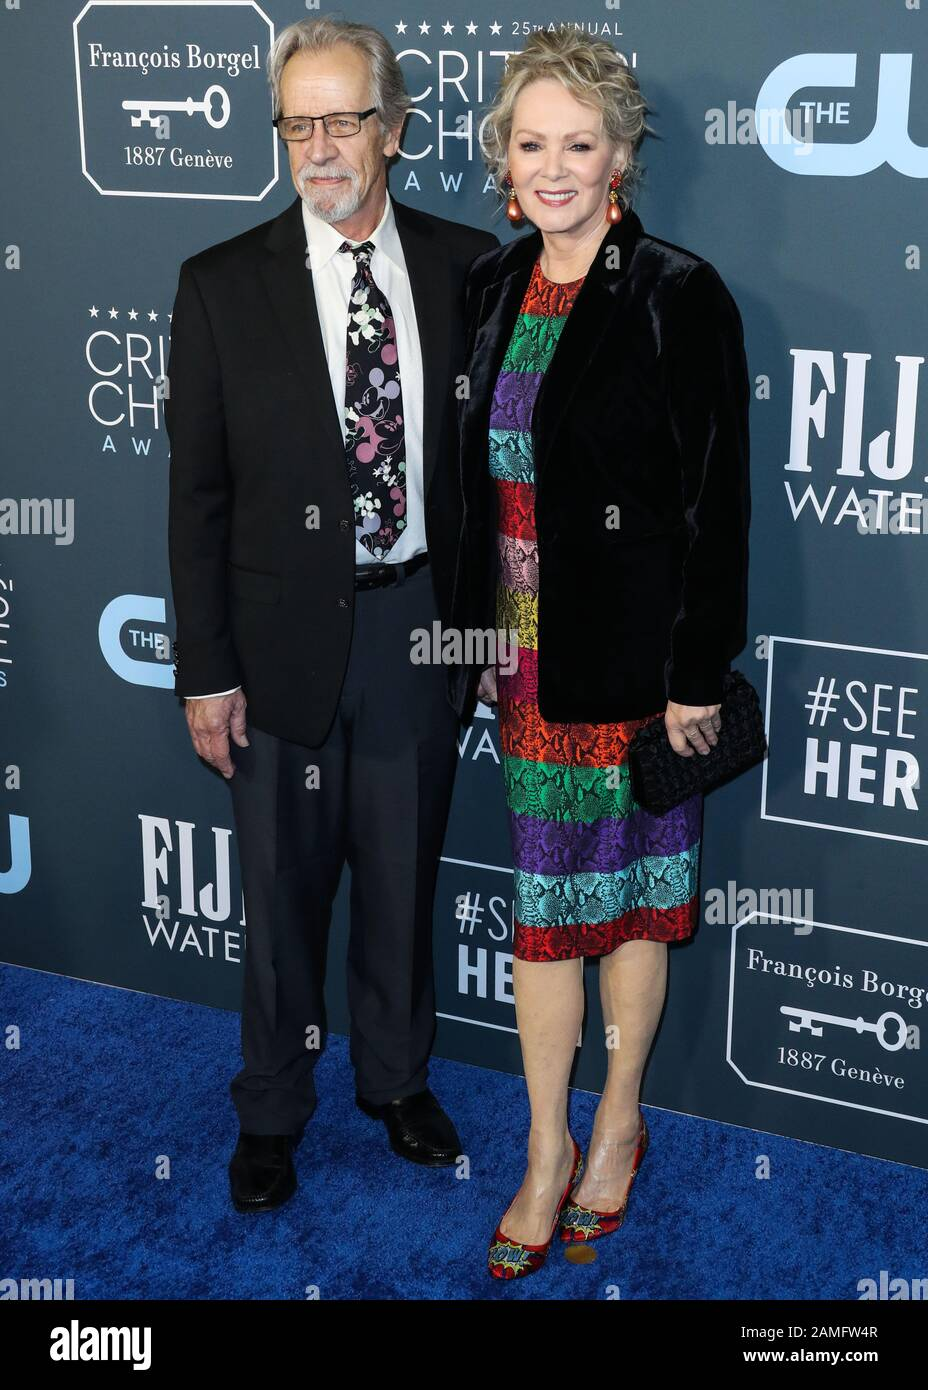 Gilliland High Resolution Stock Photography And Images Alamy In his fascinating book, local historian norrie gilliland brings grahamston back to life and shows the. https www alamy com santa monica united states 12th jan 2020 santa monica los angeles california usa january 12 richard gilliland and jean smart arrive at the 25th annual critics choice awards held at the barker hangar on january 12 2020 in santa monica los angeles california united states photo by xavier collinimage press agency credit image press agencyalamy live news image339639127 html